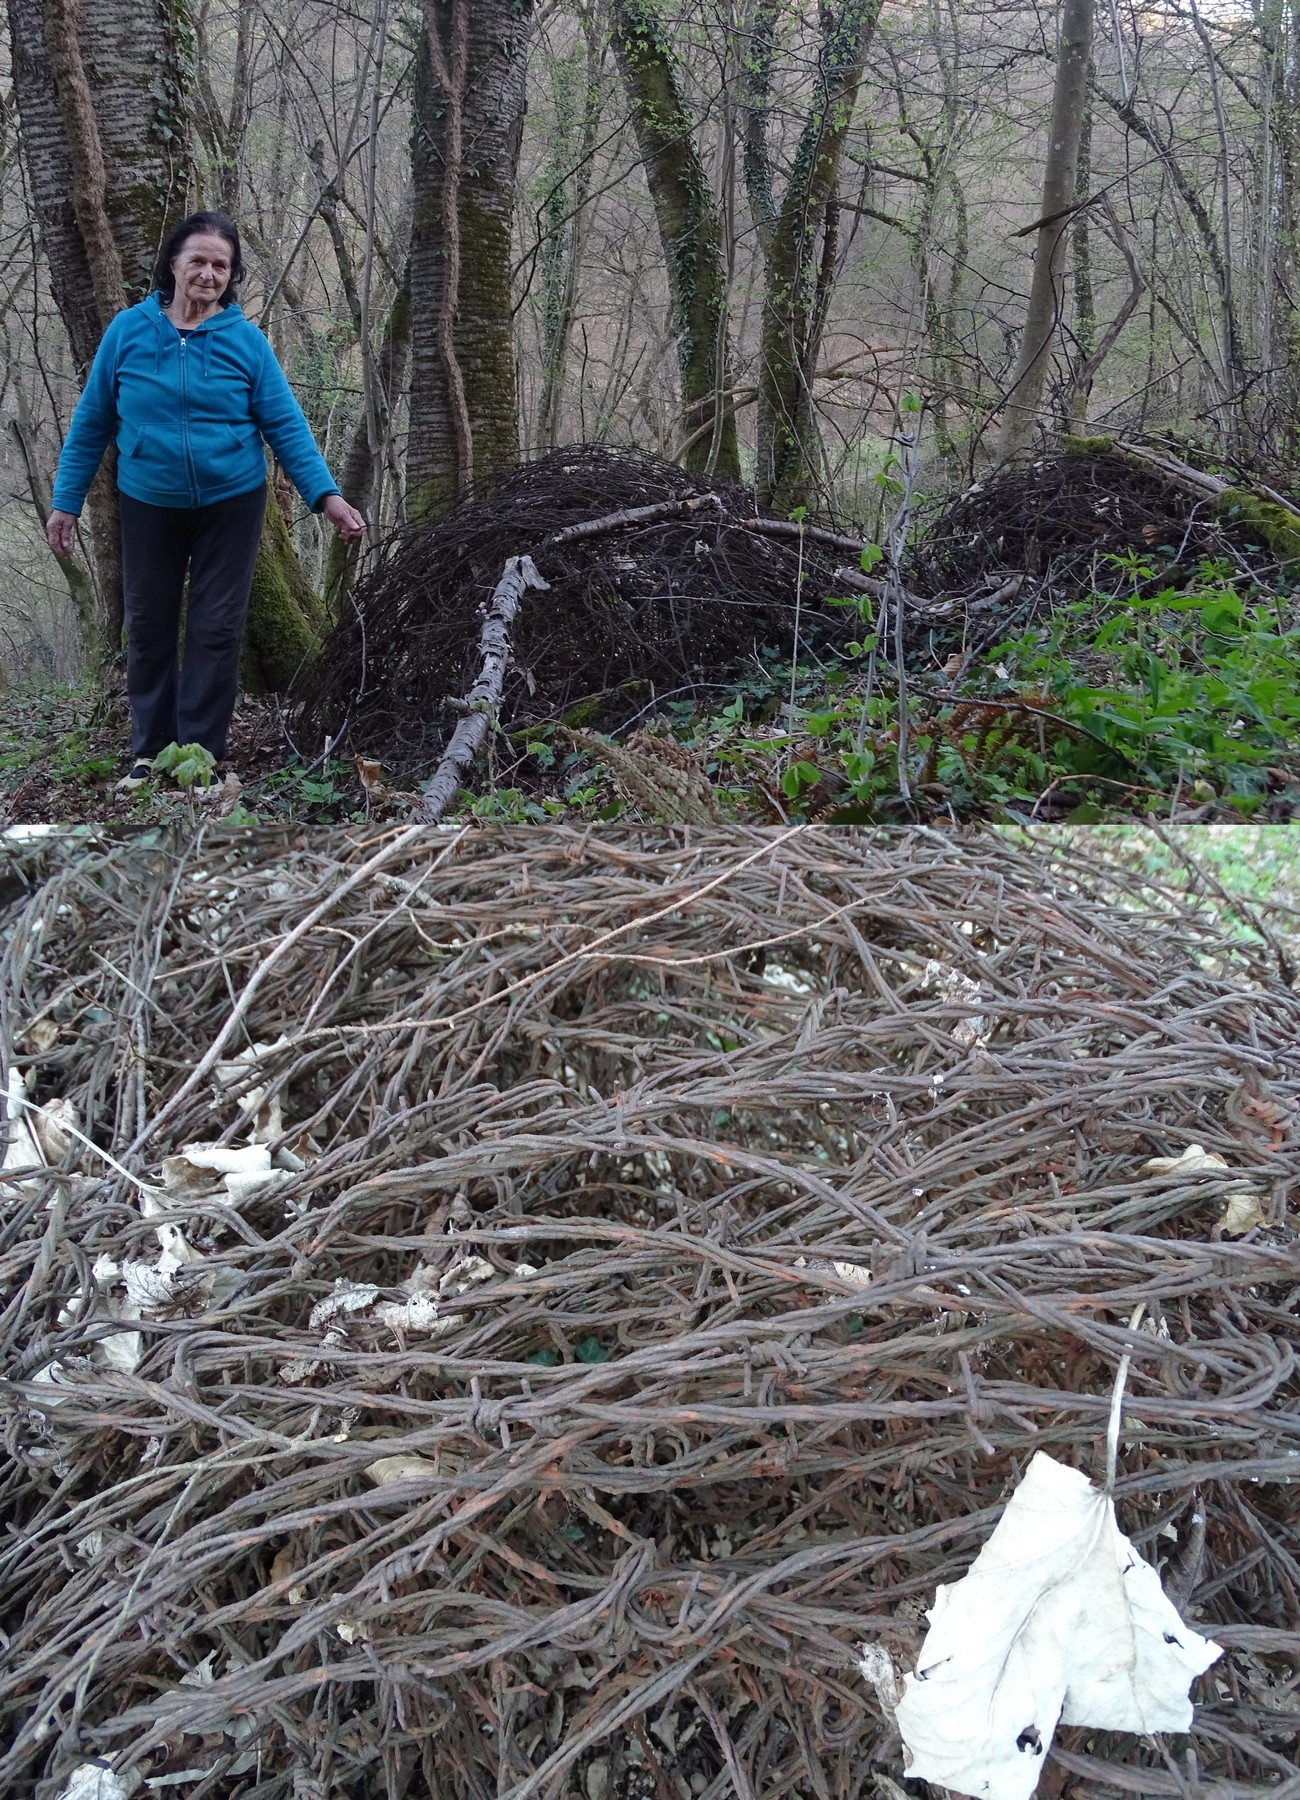 Albina Volčjak (born 1942) next to the remains of barbed wire near Dolenji Suhadol, where a fortified border ran across a deforested zone. Author: Blaž Štangelj.